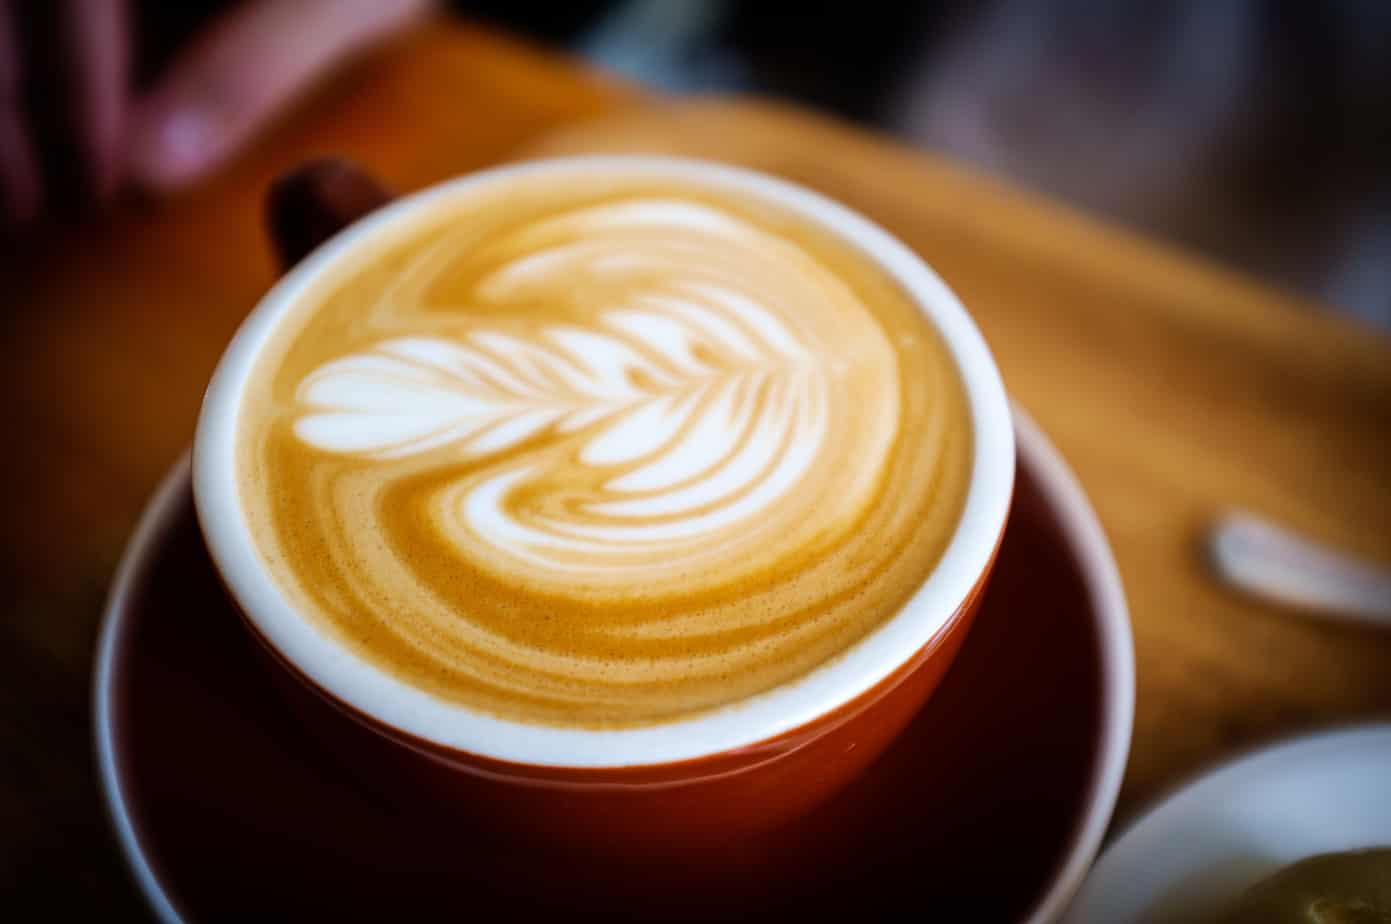 Three Cups of Coffee Daily Reduces Prostate Cancer Risk by Half